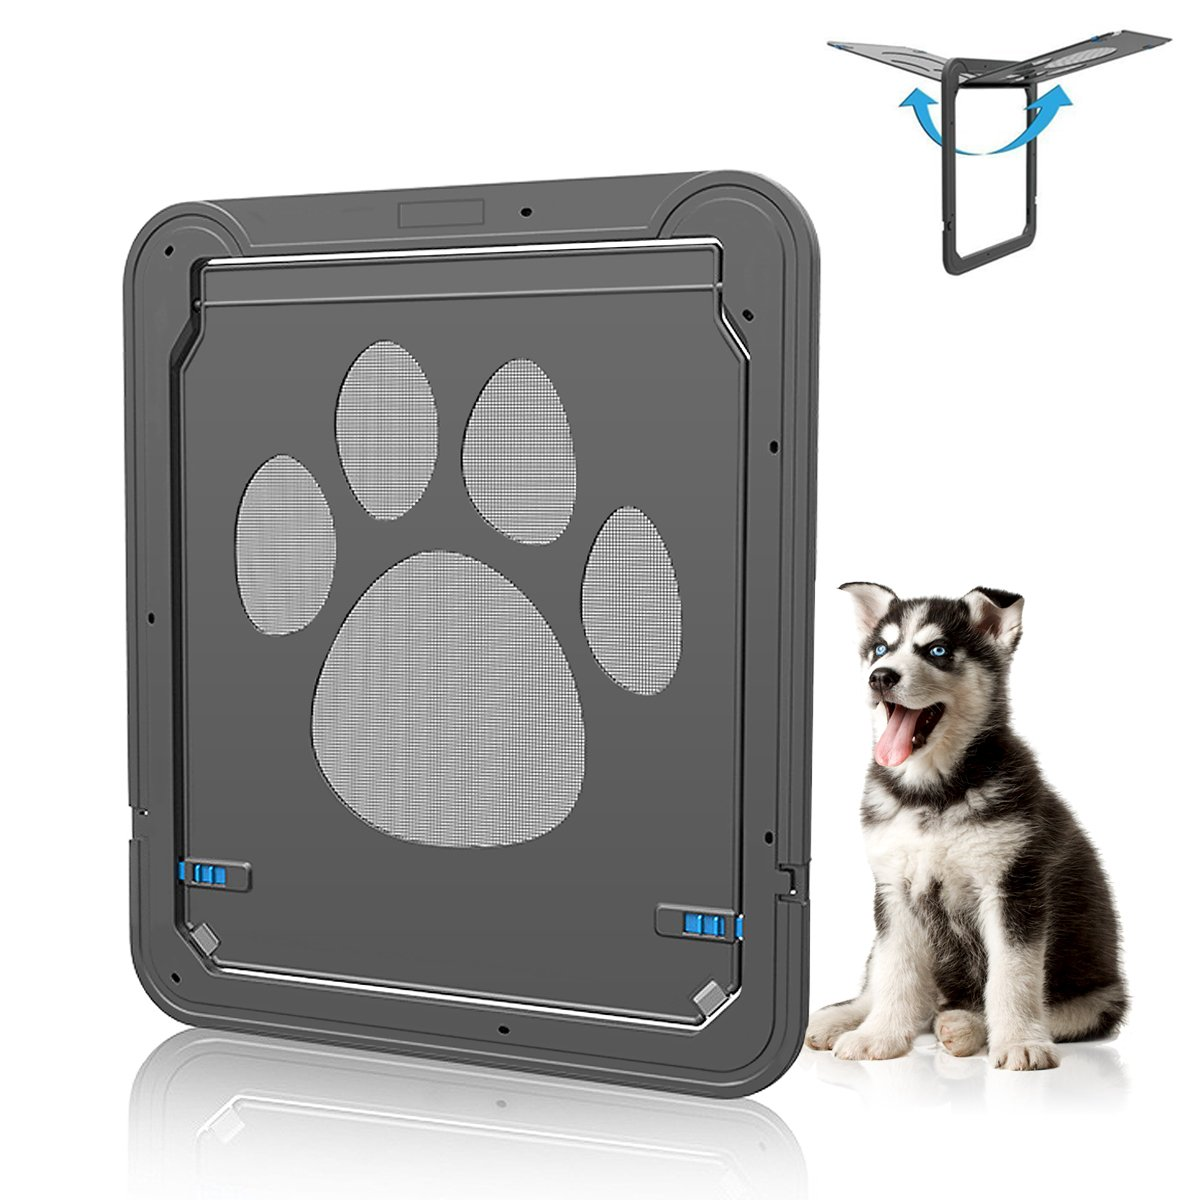 Wrcibo Dog Door for Screen Door, Dog Door Auto Locking Magnetic Cat Door Indoor/Outdoor for Small Medium Large Size Dog Doggie, 12.2''x14.2'' Flap